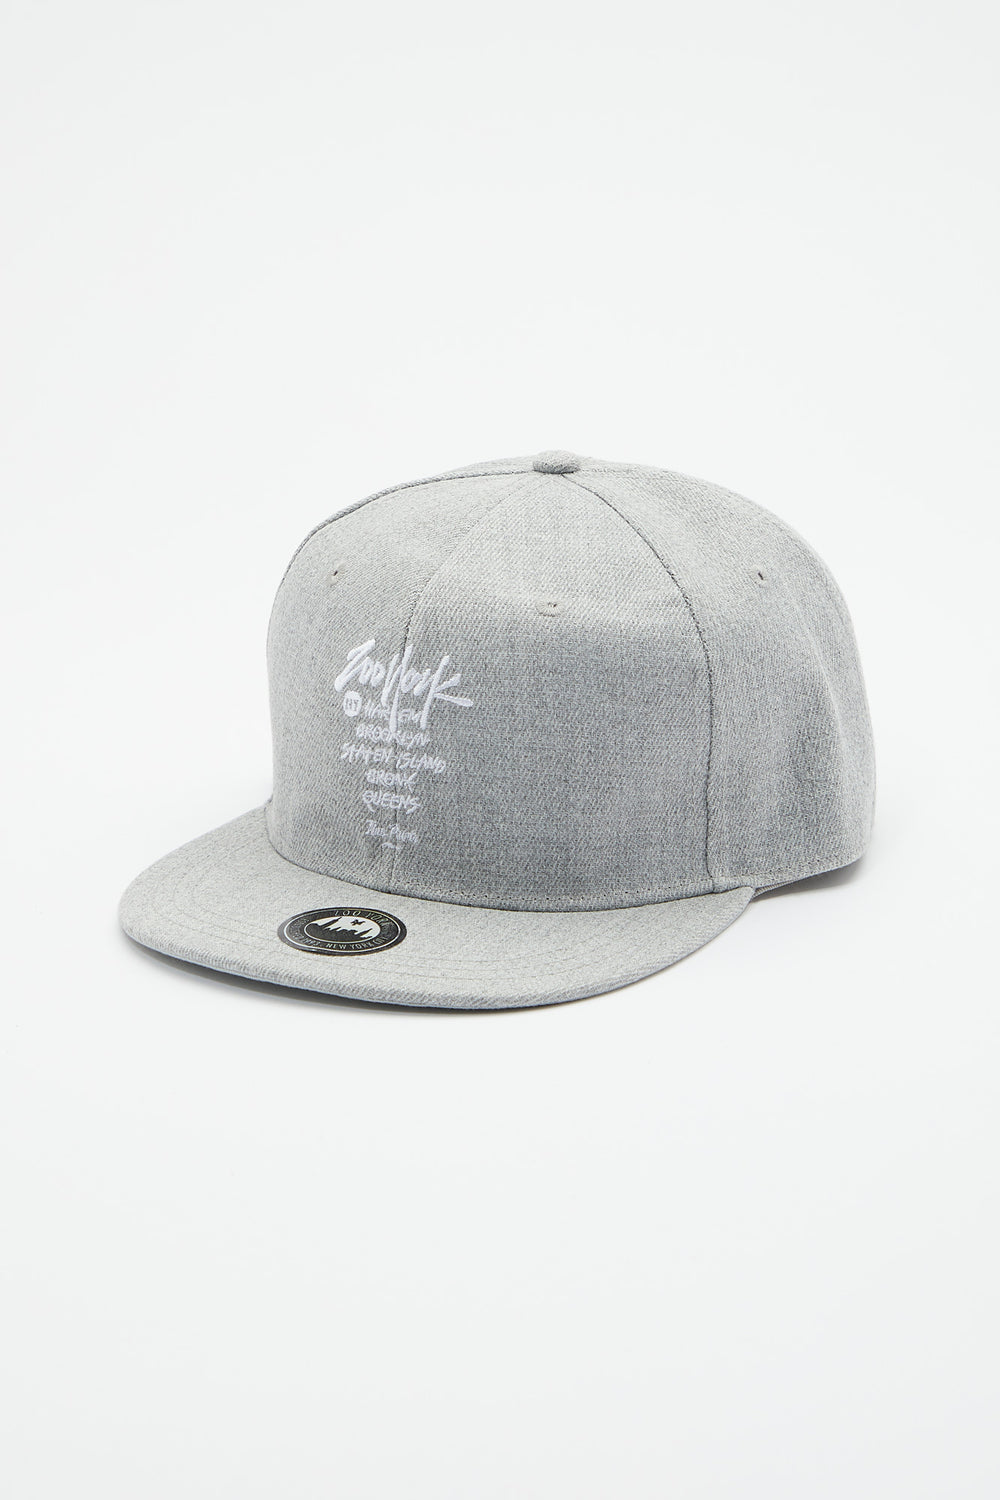 Zoo York Mens City Boroughs Snapback Heather Grey